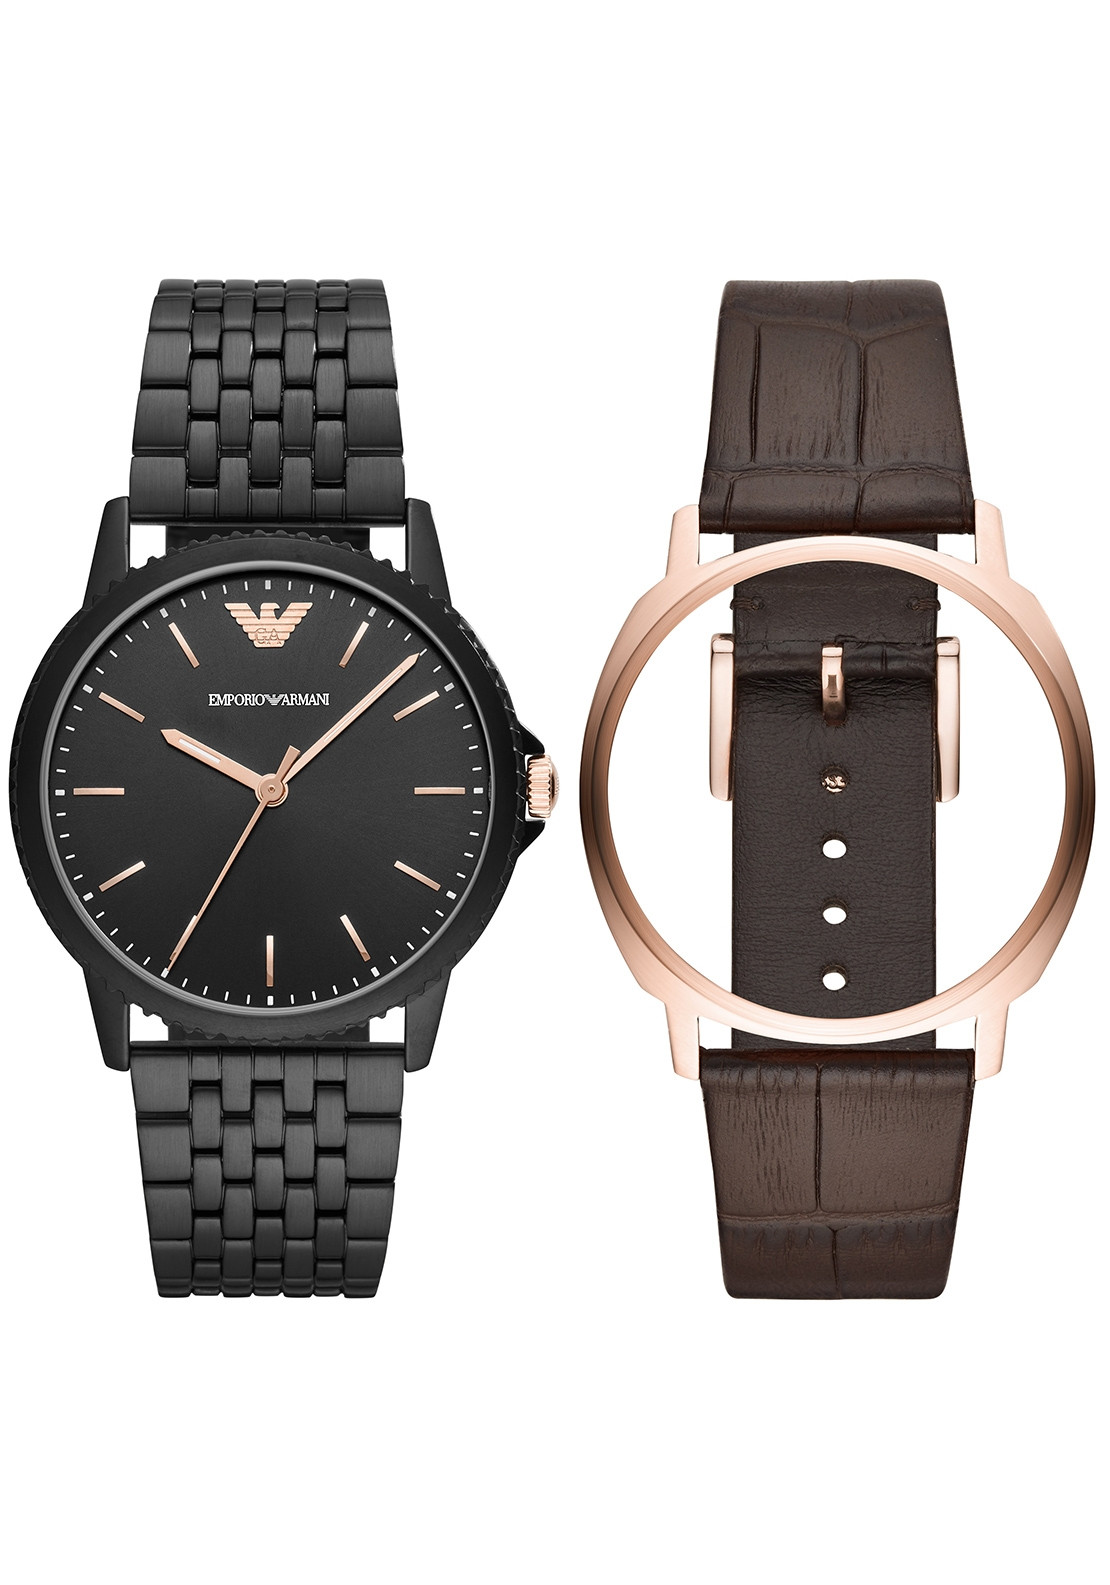 Emporio Armani Interchangeable Straps Set